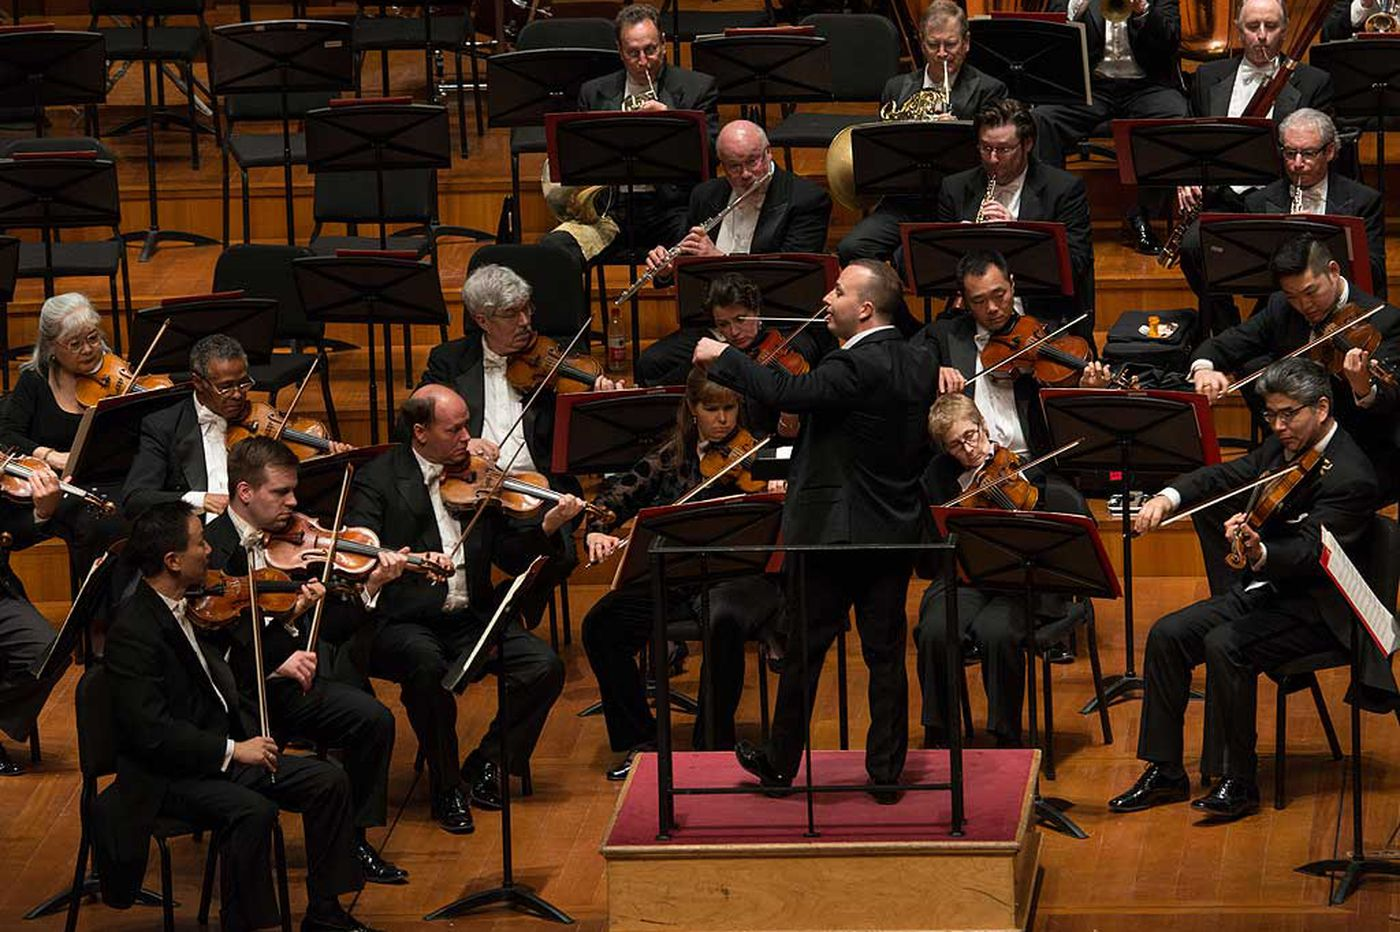 How do taxpayers benefit, when Pa. helps send the Philadelphia Orchestra to China, amid a trade war?